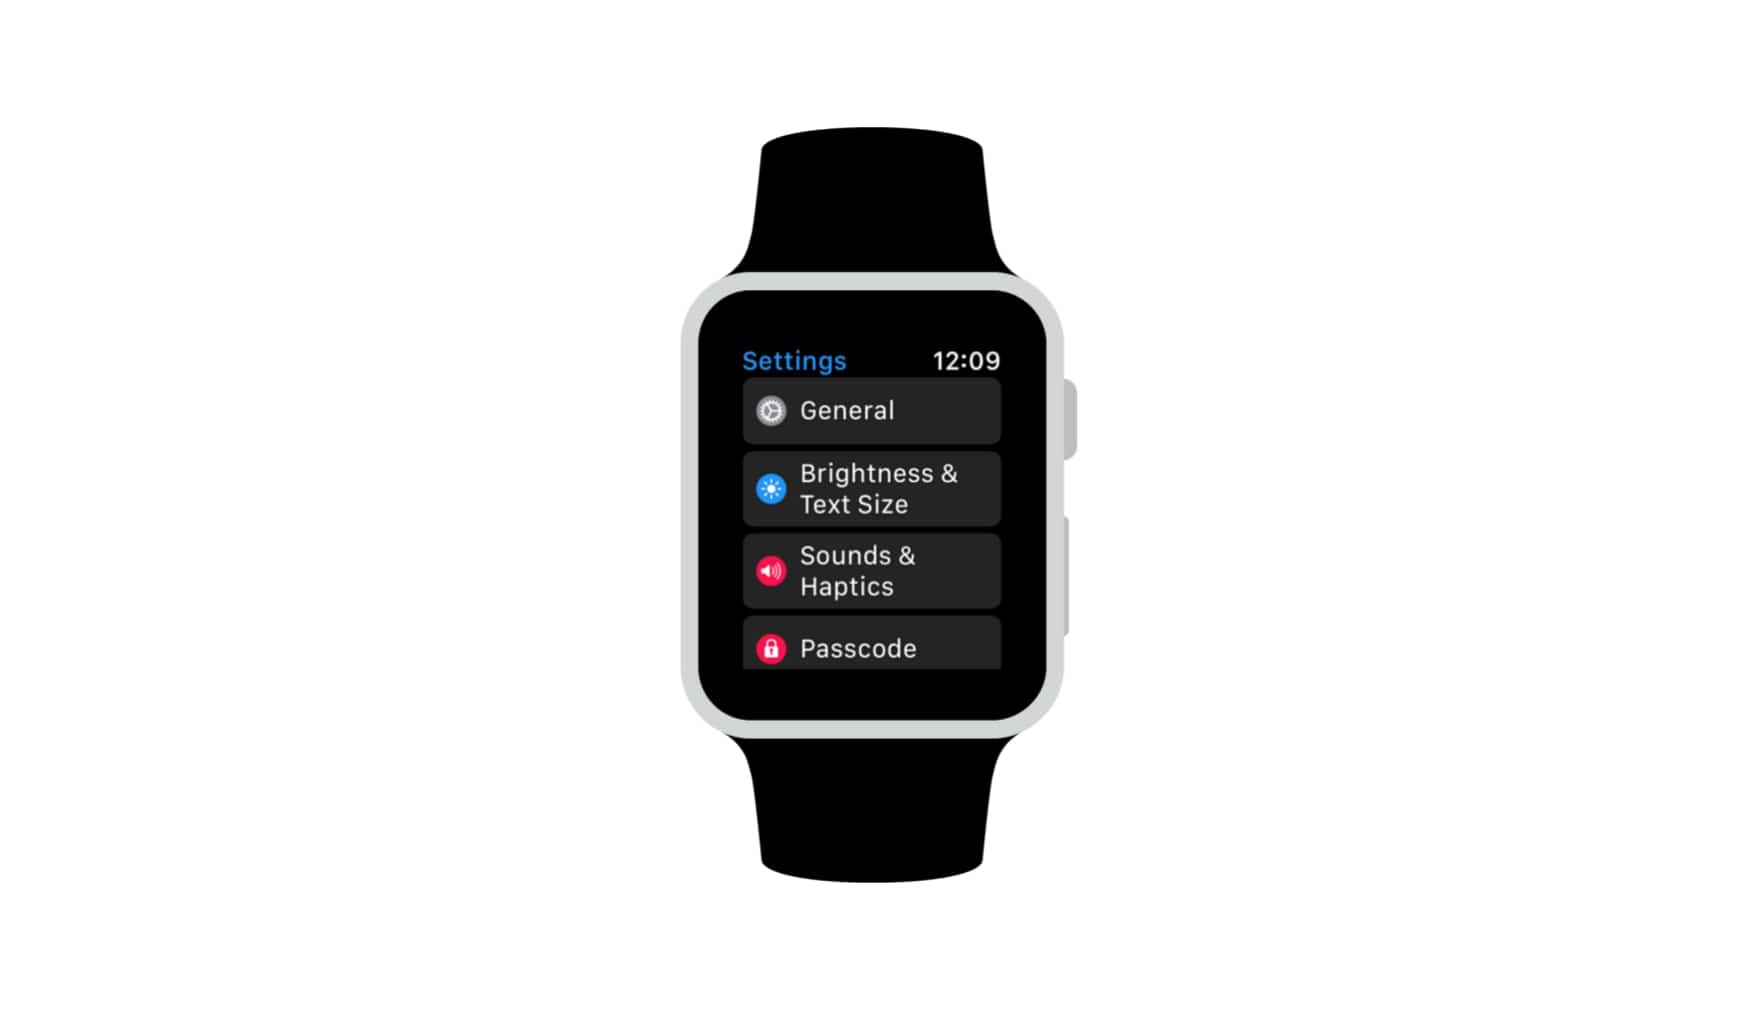 WatchOS 4 wishlist always-on display